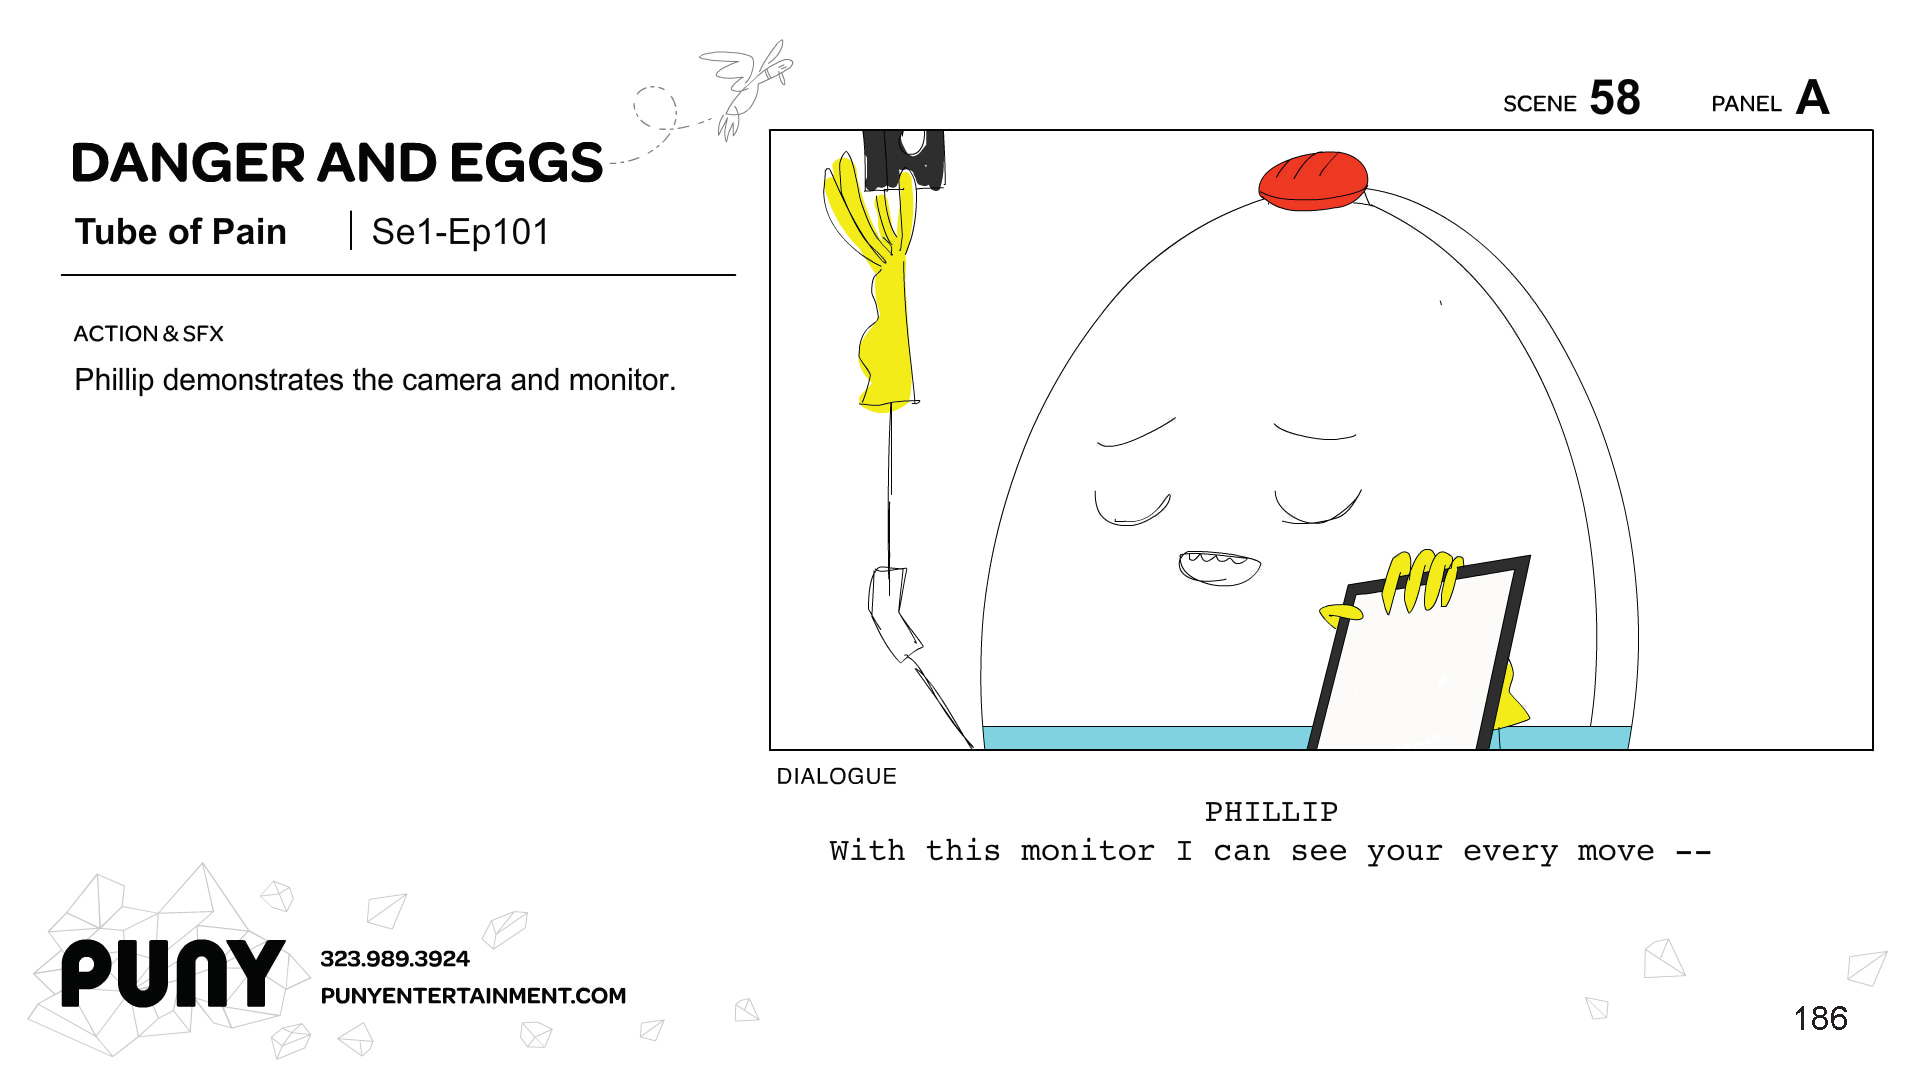 MikeOwens_STORYBOARDS_DangerAndEggs_Page_186.png